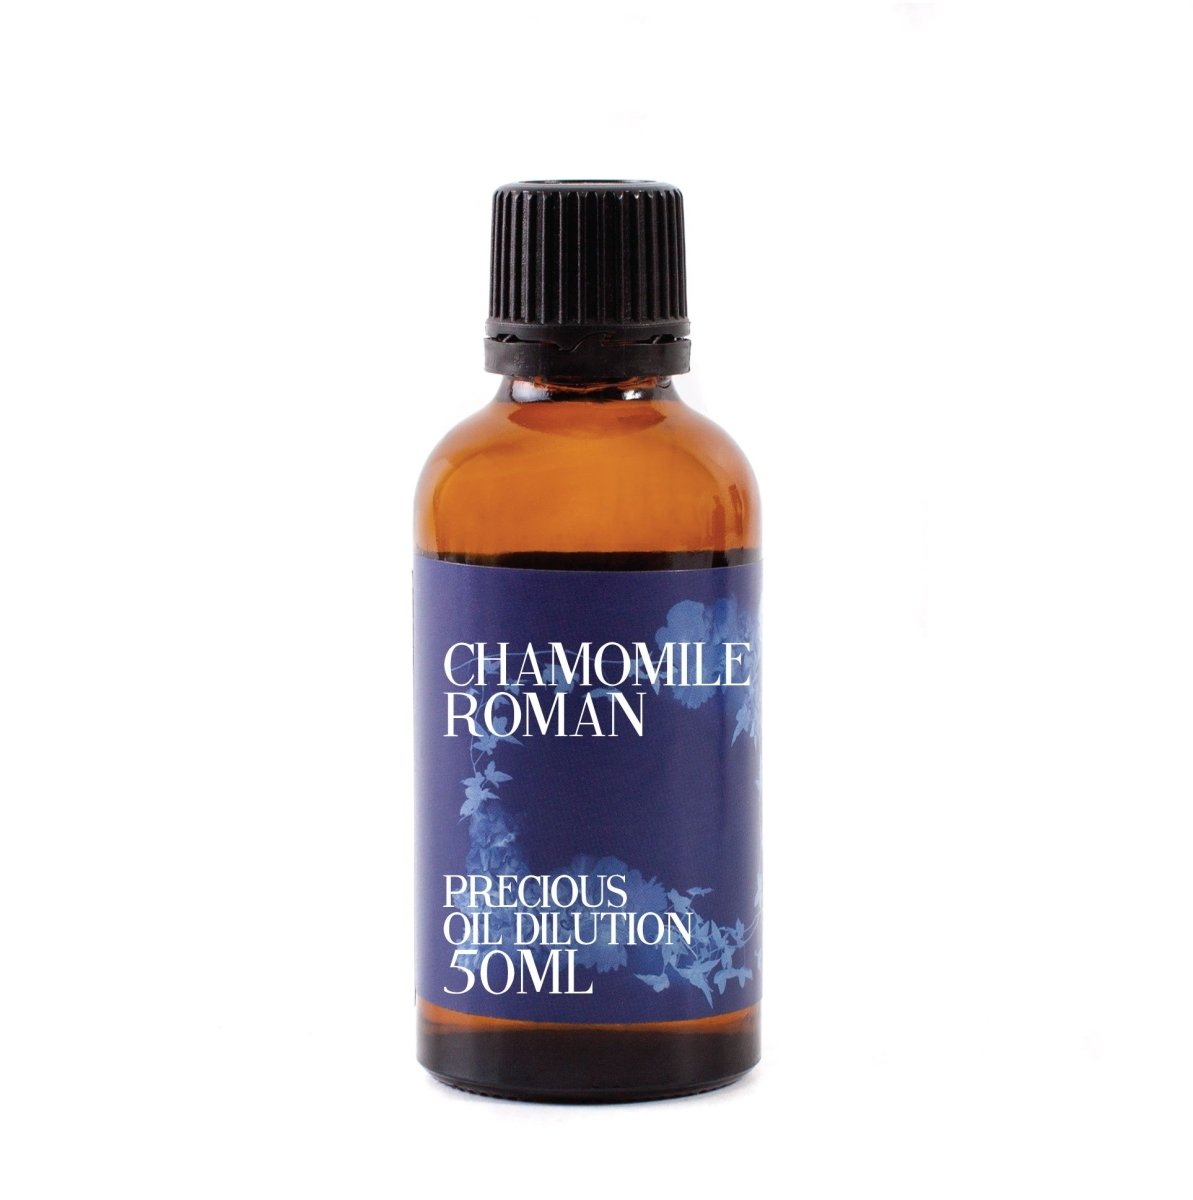 Chamomile Roman Essential Oil Dilution - Mystic Moments UK